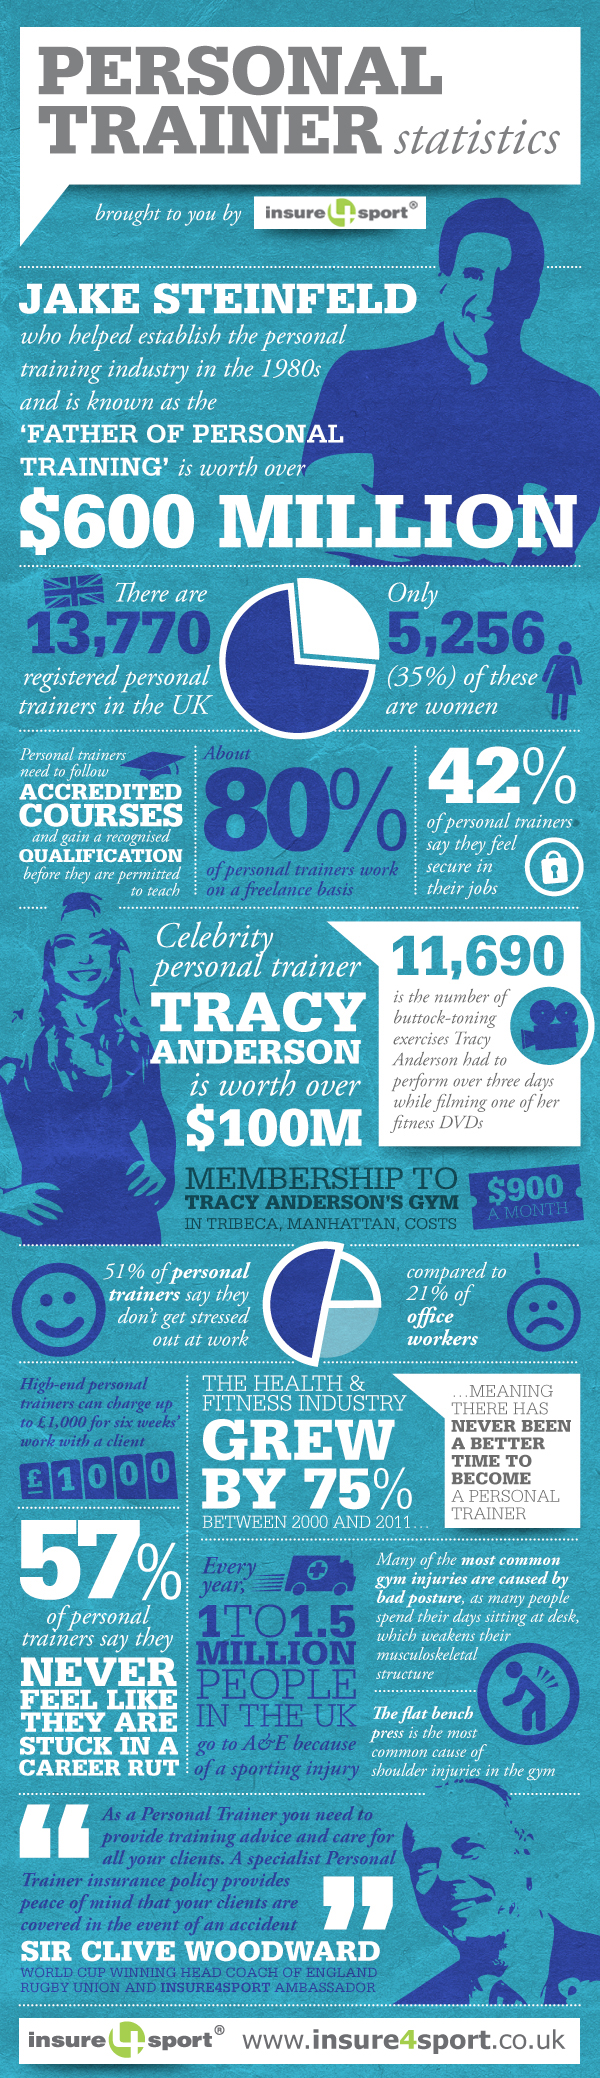 personal-trainer-infographic-insure4sport